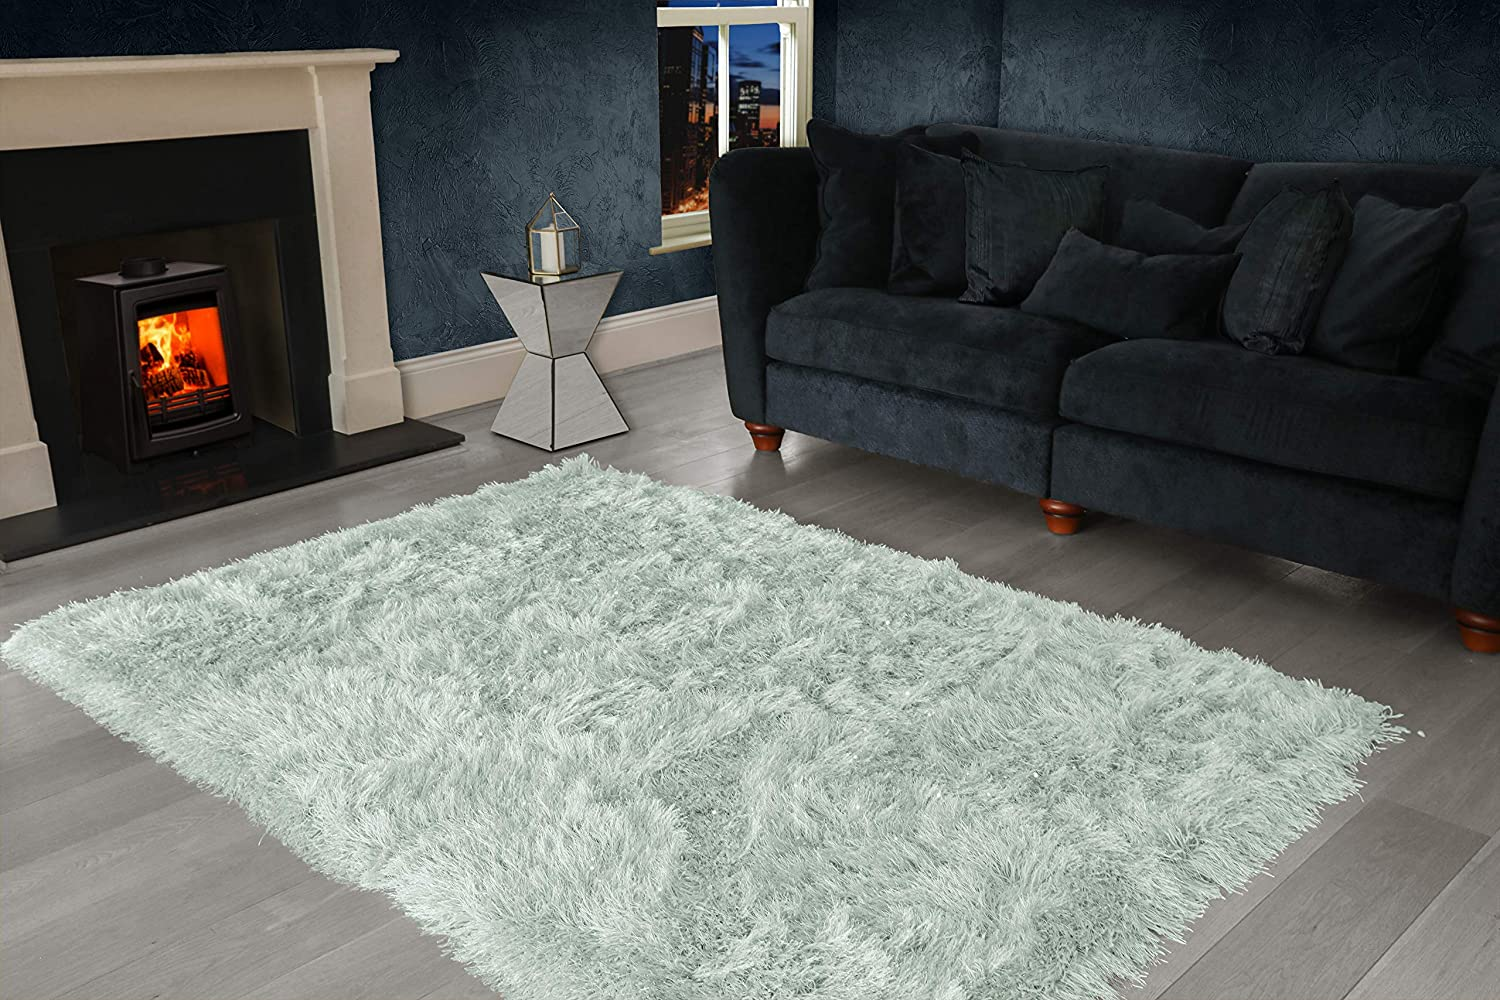 VICEROY BEDDING 9cm Extra Thick Dense Pile SHAGGY RUG with SPARKLE SHINE Strands - For Living Room Area Rugs - Modern Luxurious Super Soft Touch (Charcoal Black, 60cm x 110cm (2ft x 3.6ft))